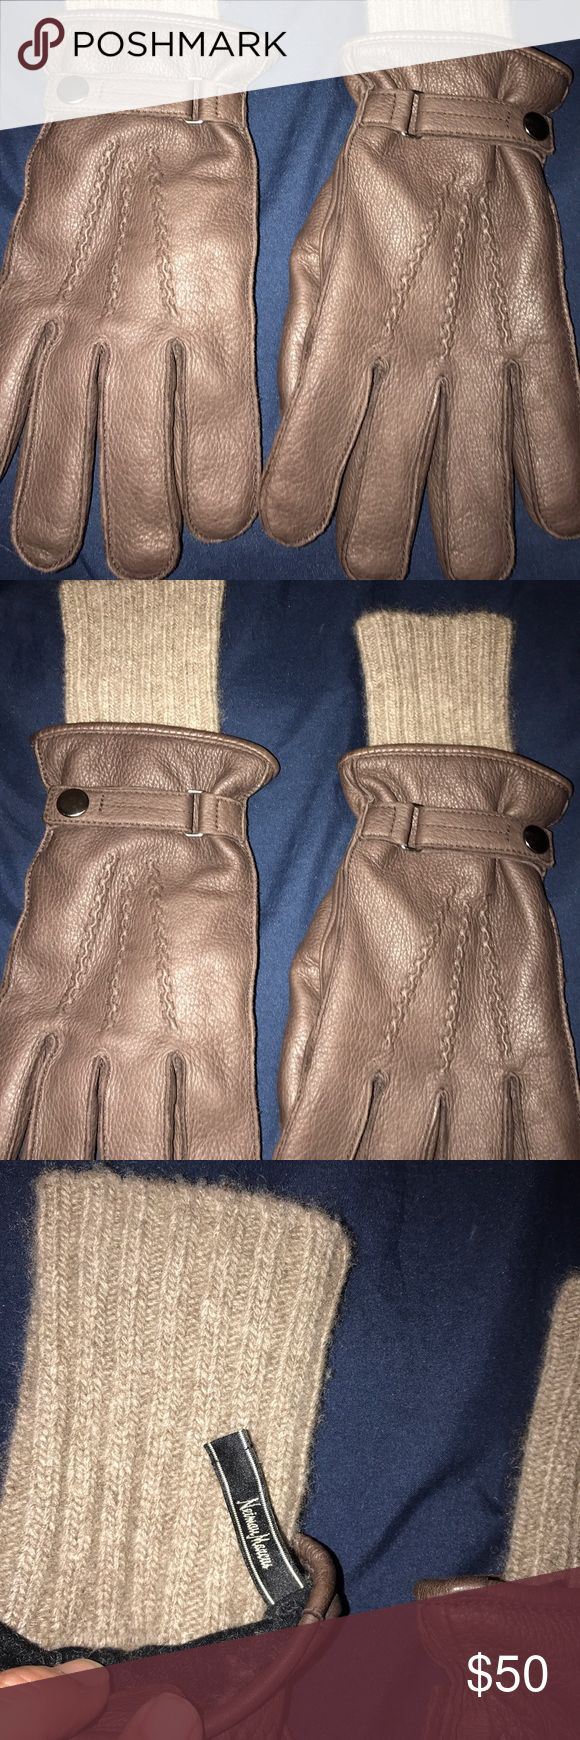 Mens gloves knitting pattern - Men S Gloves Men S Leather Gloves Never Used In Excellent Condition Nieman Marcus Accessories Gloves